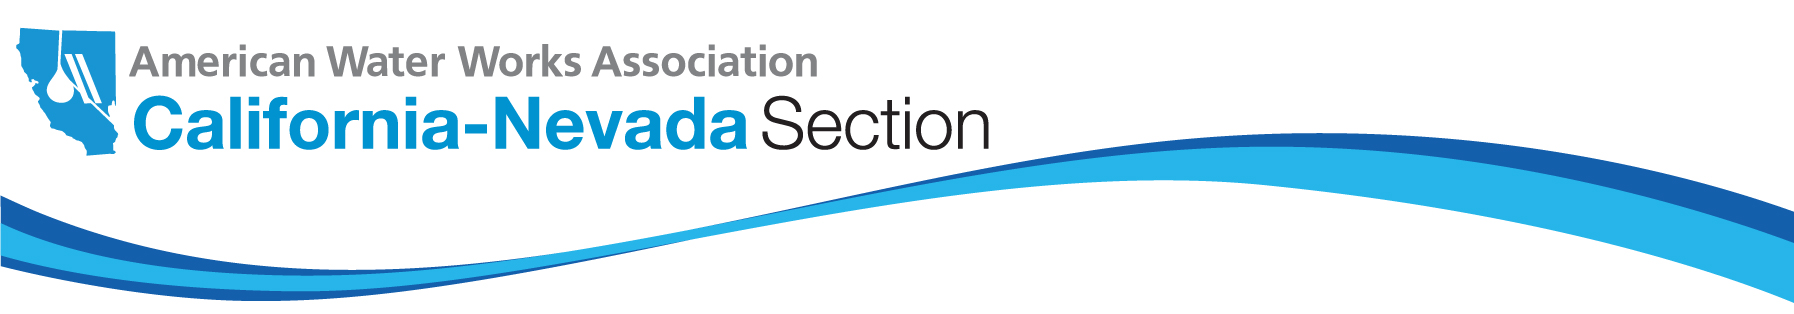 California-Nevada Section AWWA Logo 2016